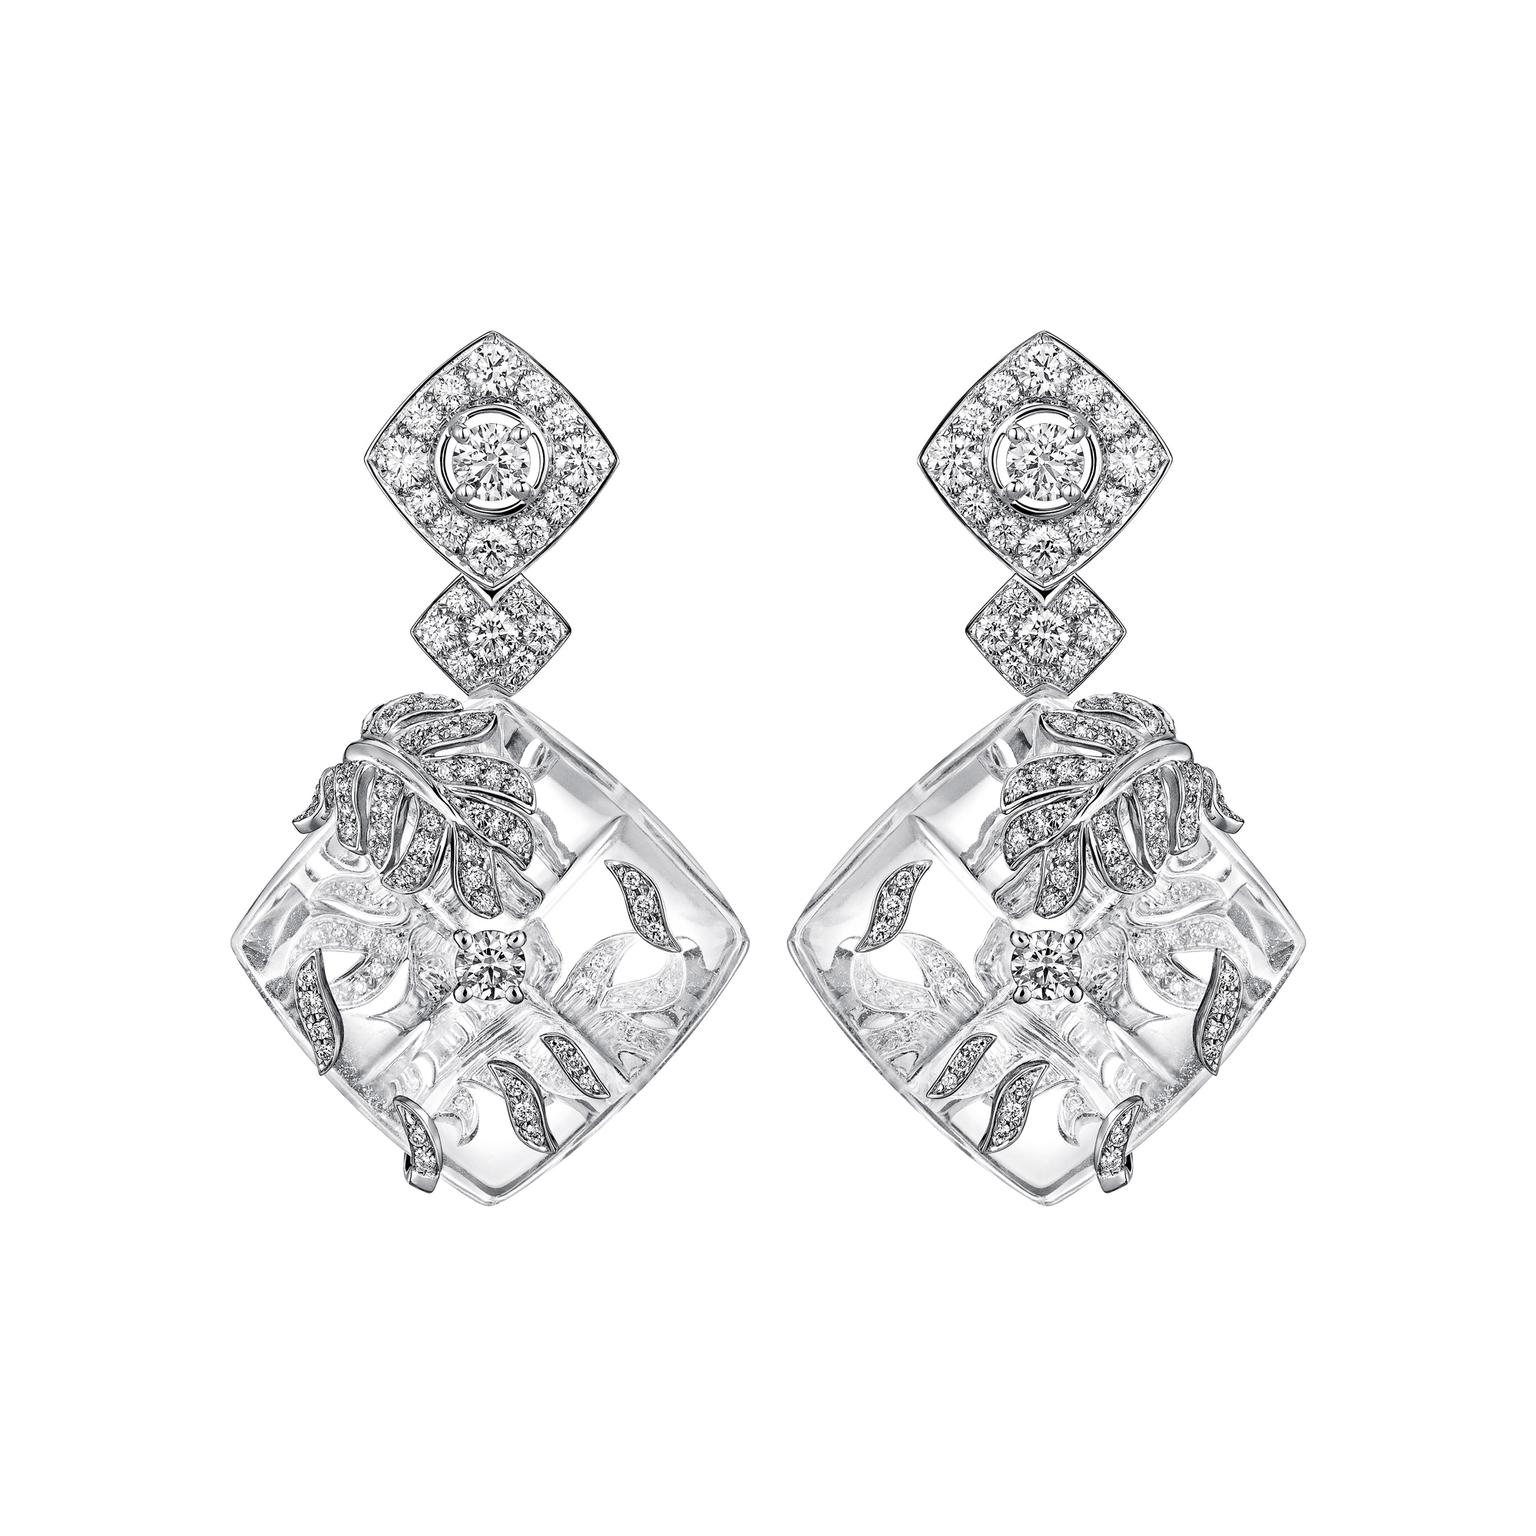 Chanel Signature Cocoon earrings